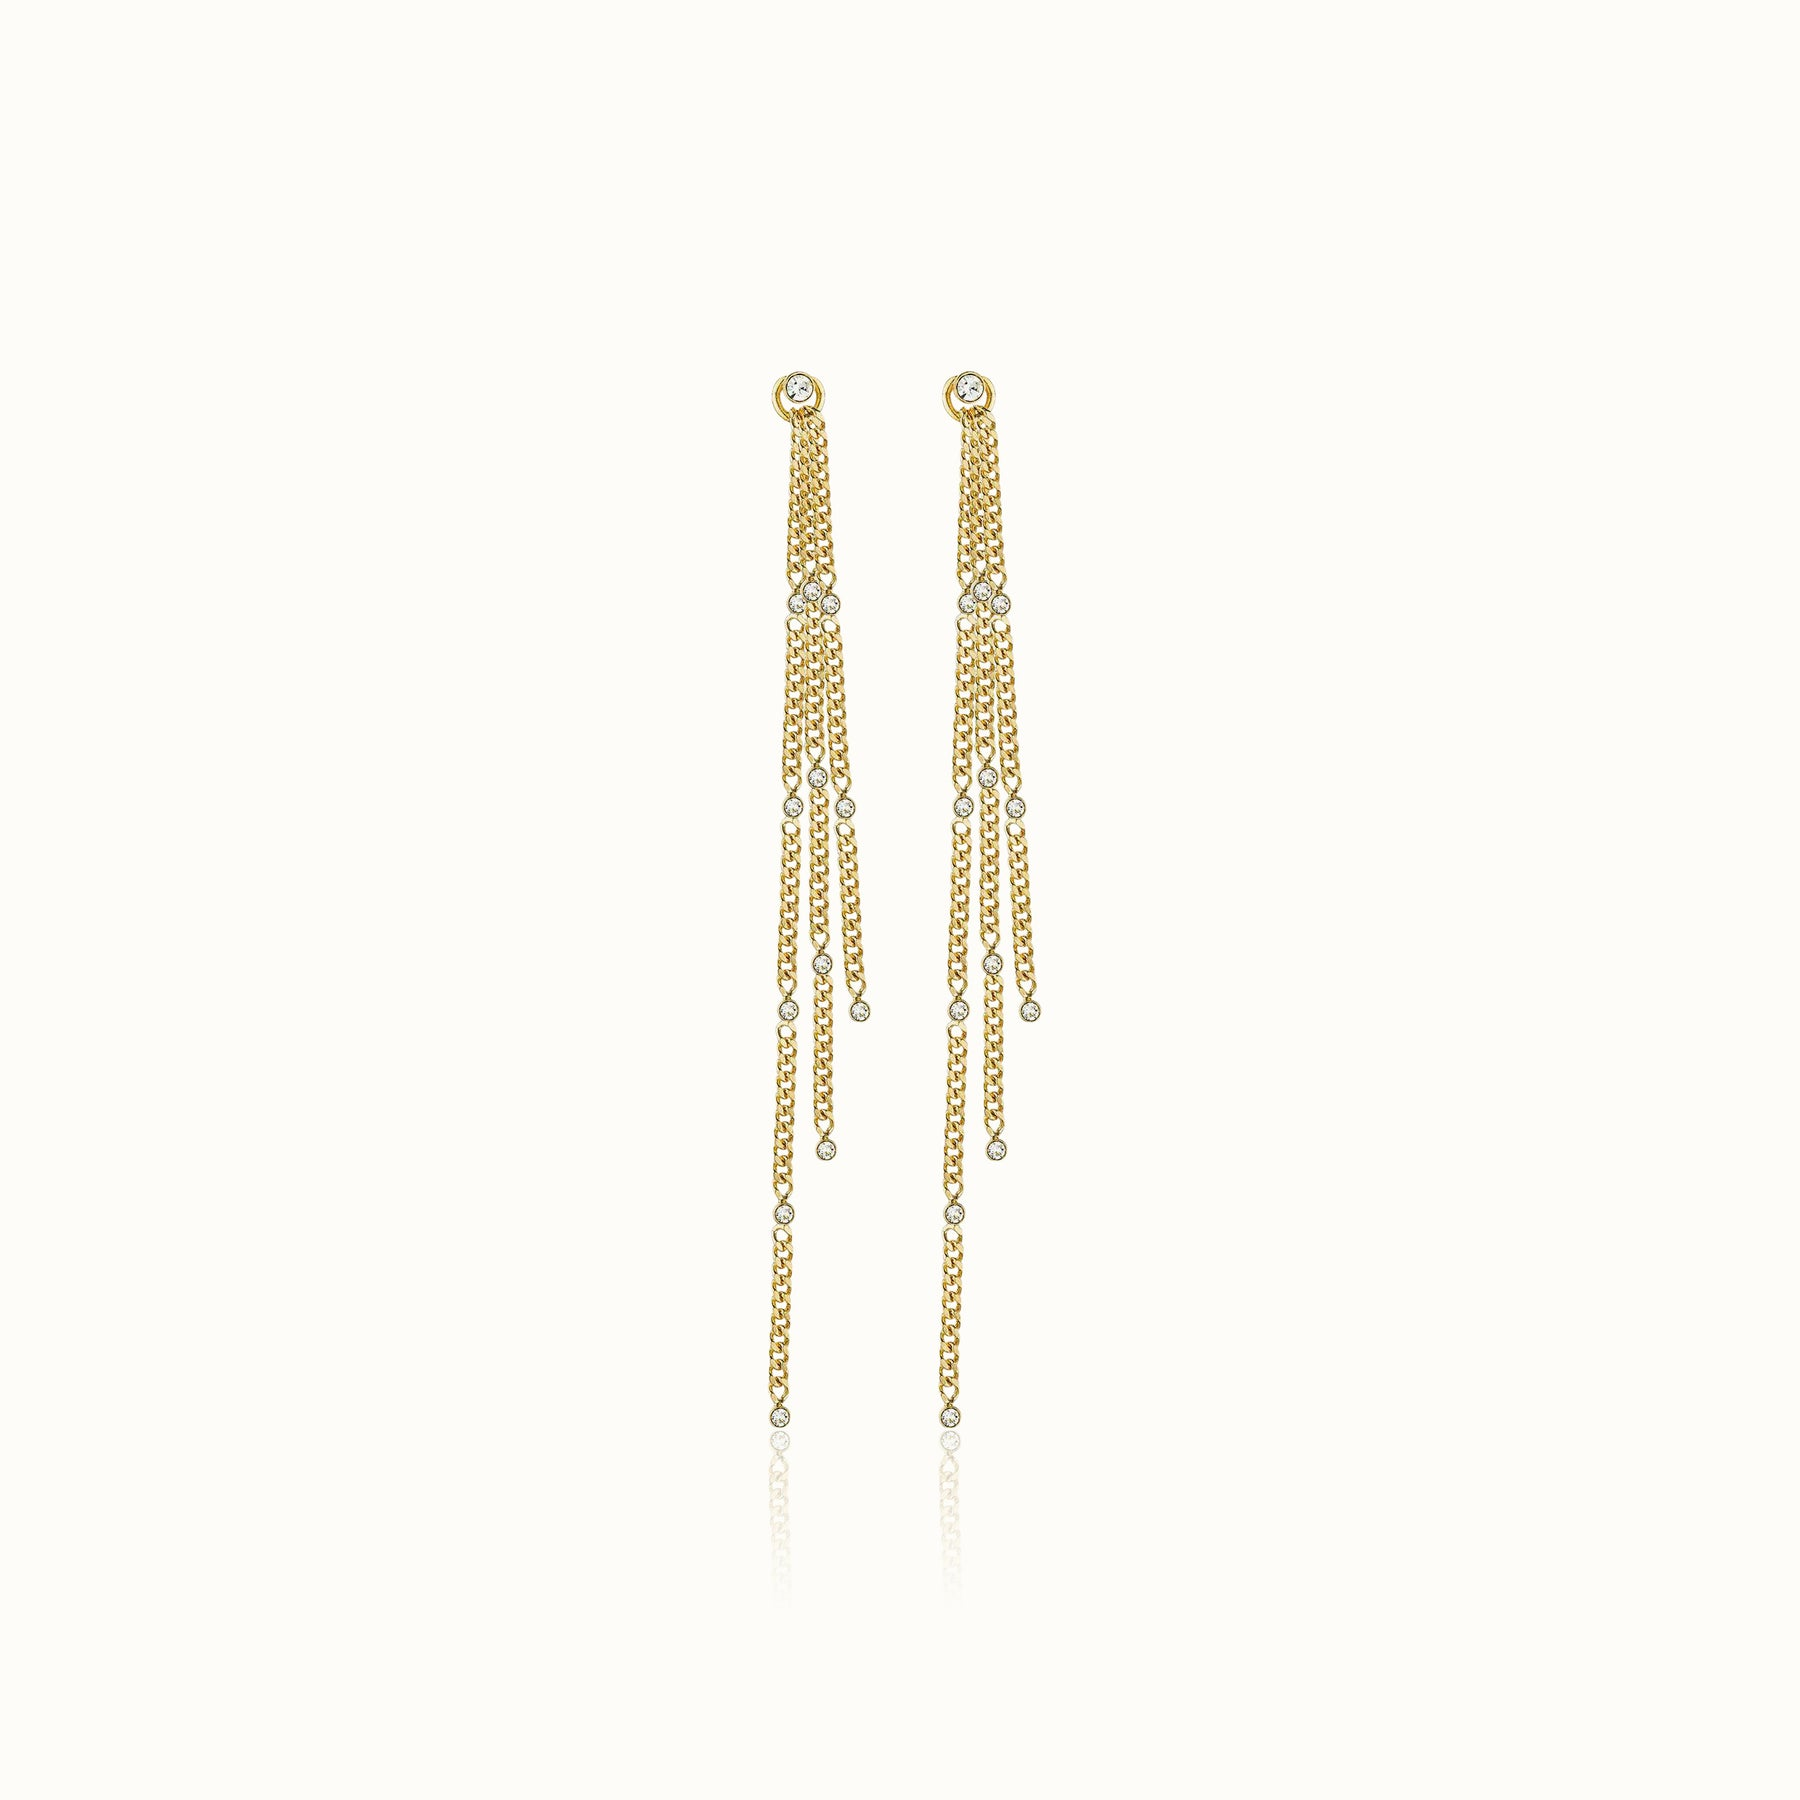 Stella Solitaire Earrings